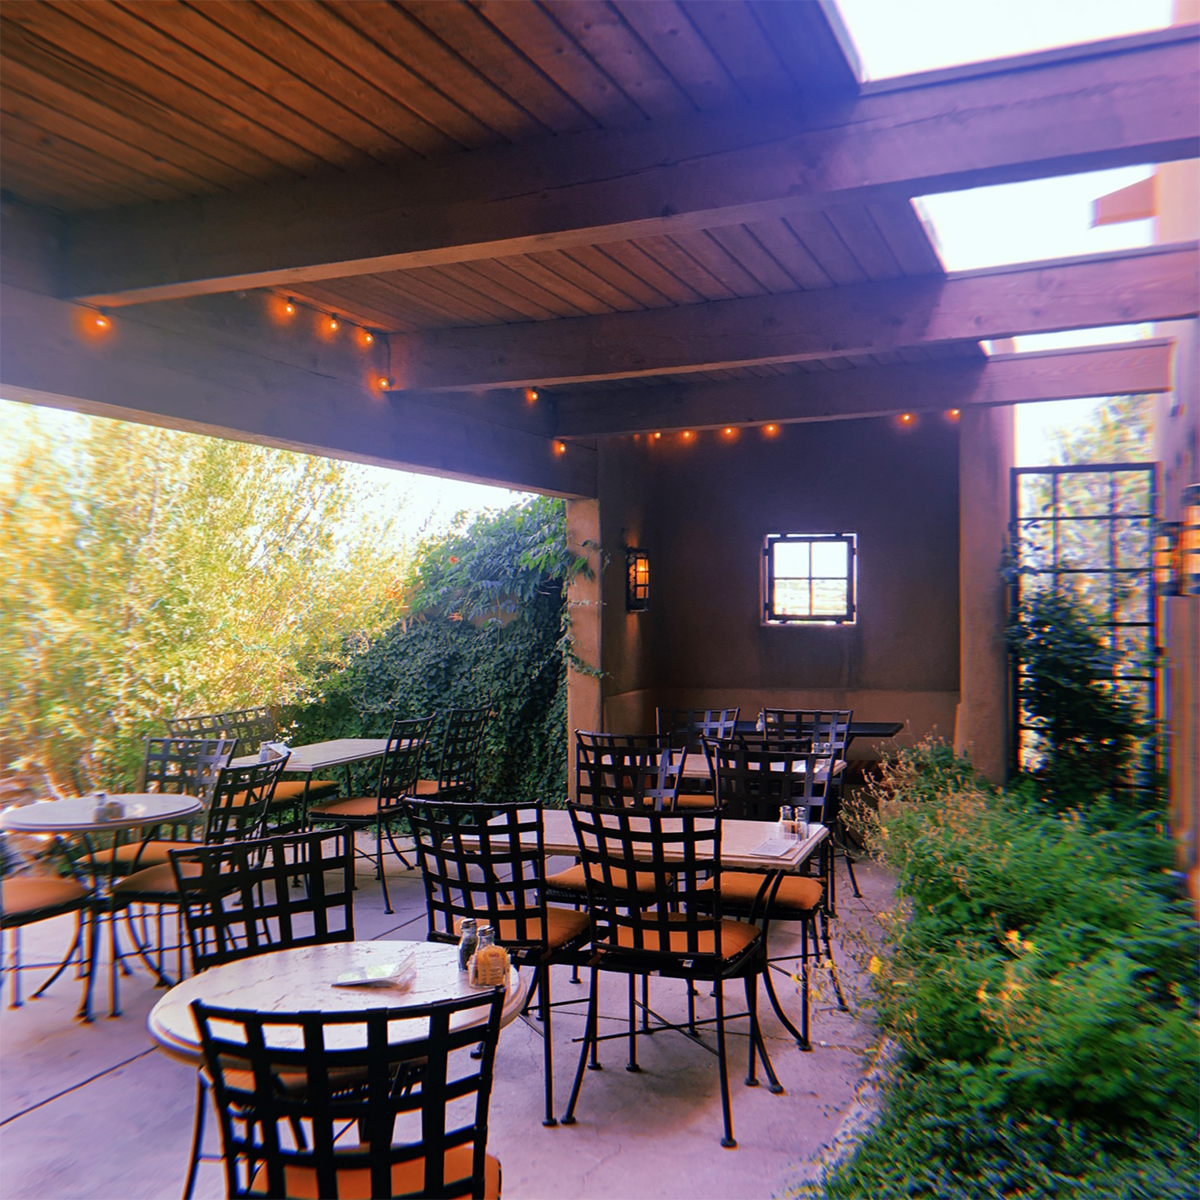 Open-air Patio - As spring arrives here in New Mexico, we are opening our open-air patio! Come enjoy some excellent BBQ in the warmer desert air. See you soon!